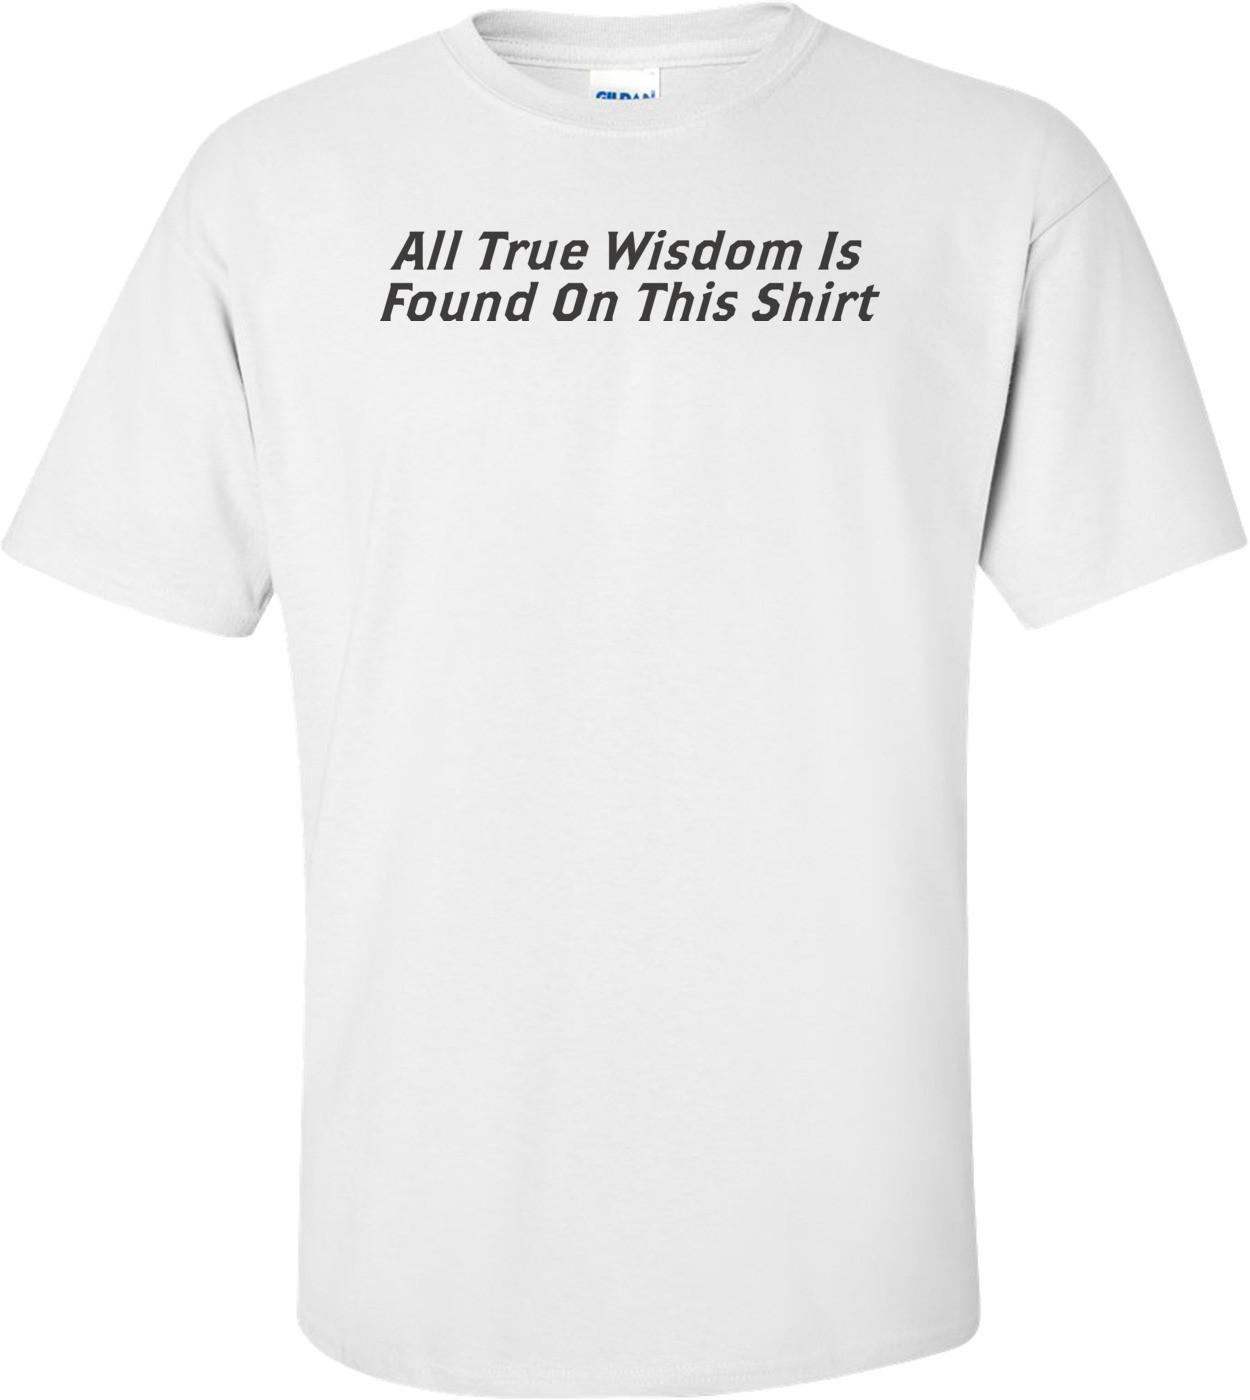 All True Wisdom Is Found On This Shirt T-shirt